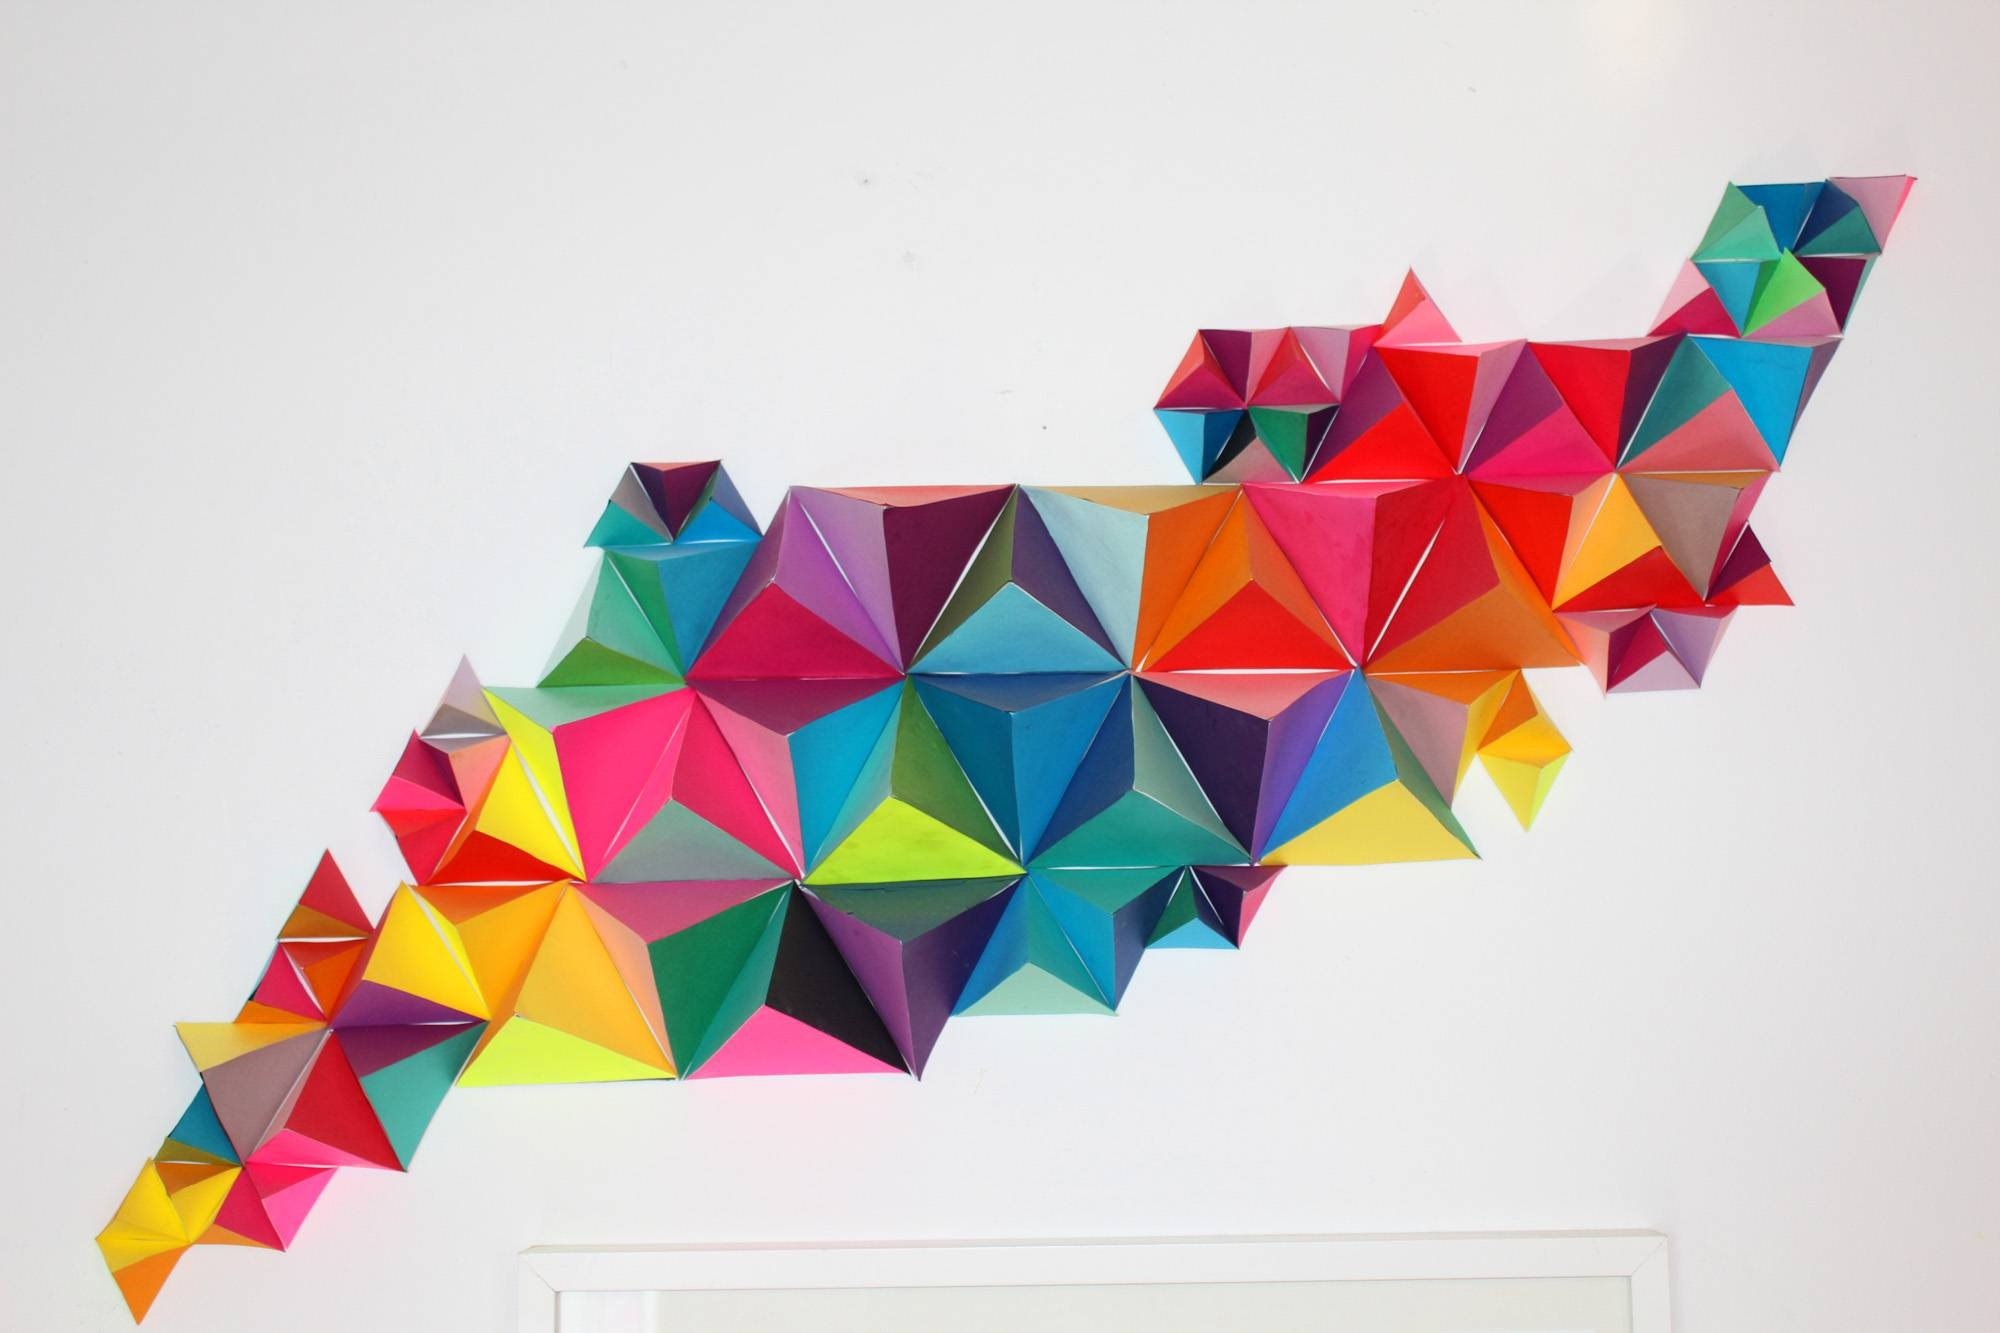 3D Geometric Wall Sculpture Sm | Make: Diy Projects And Ideas For Intended For Most Up To Date 3D Triangle Wall Art (Gallery 2 of 20)